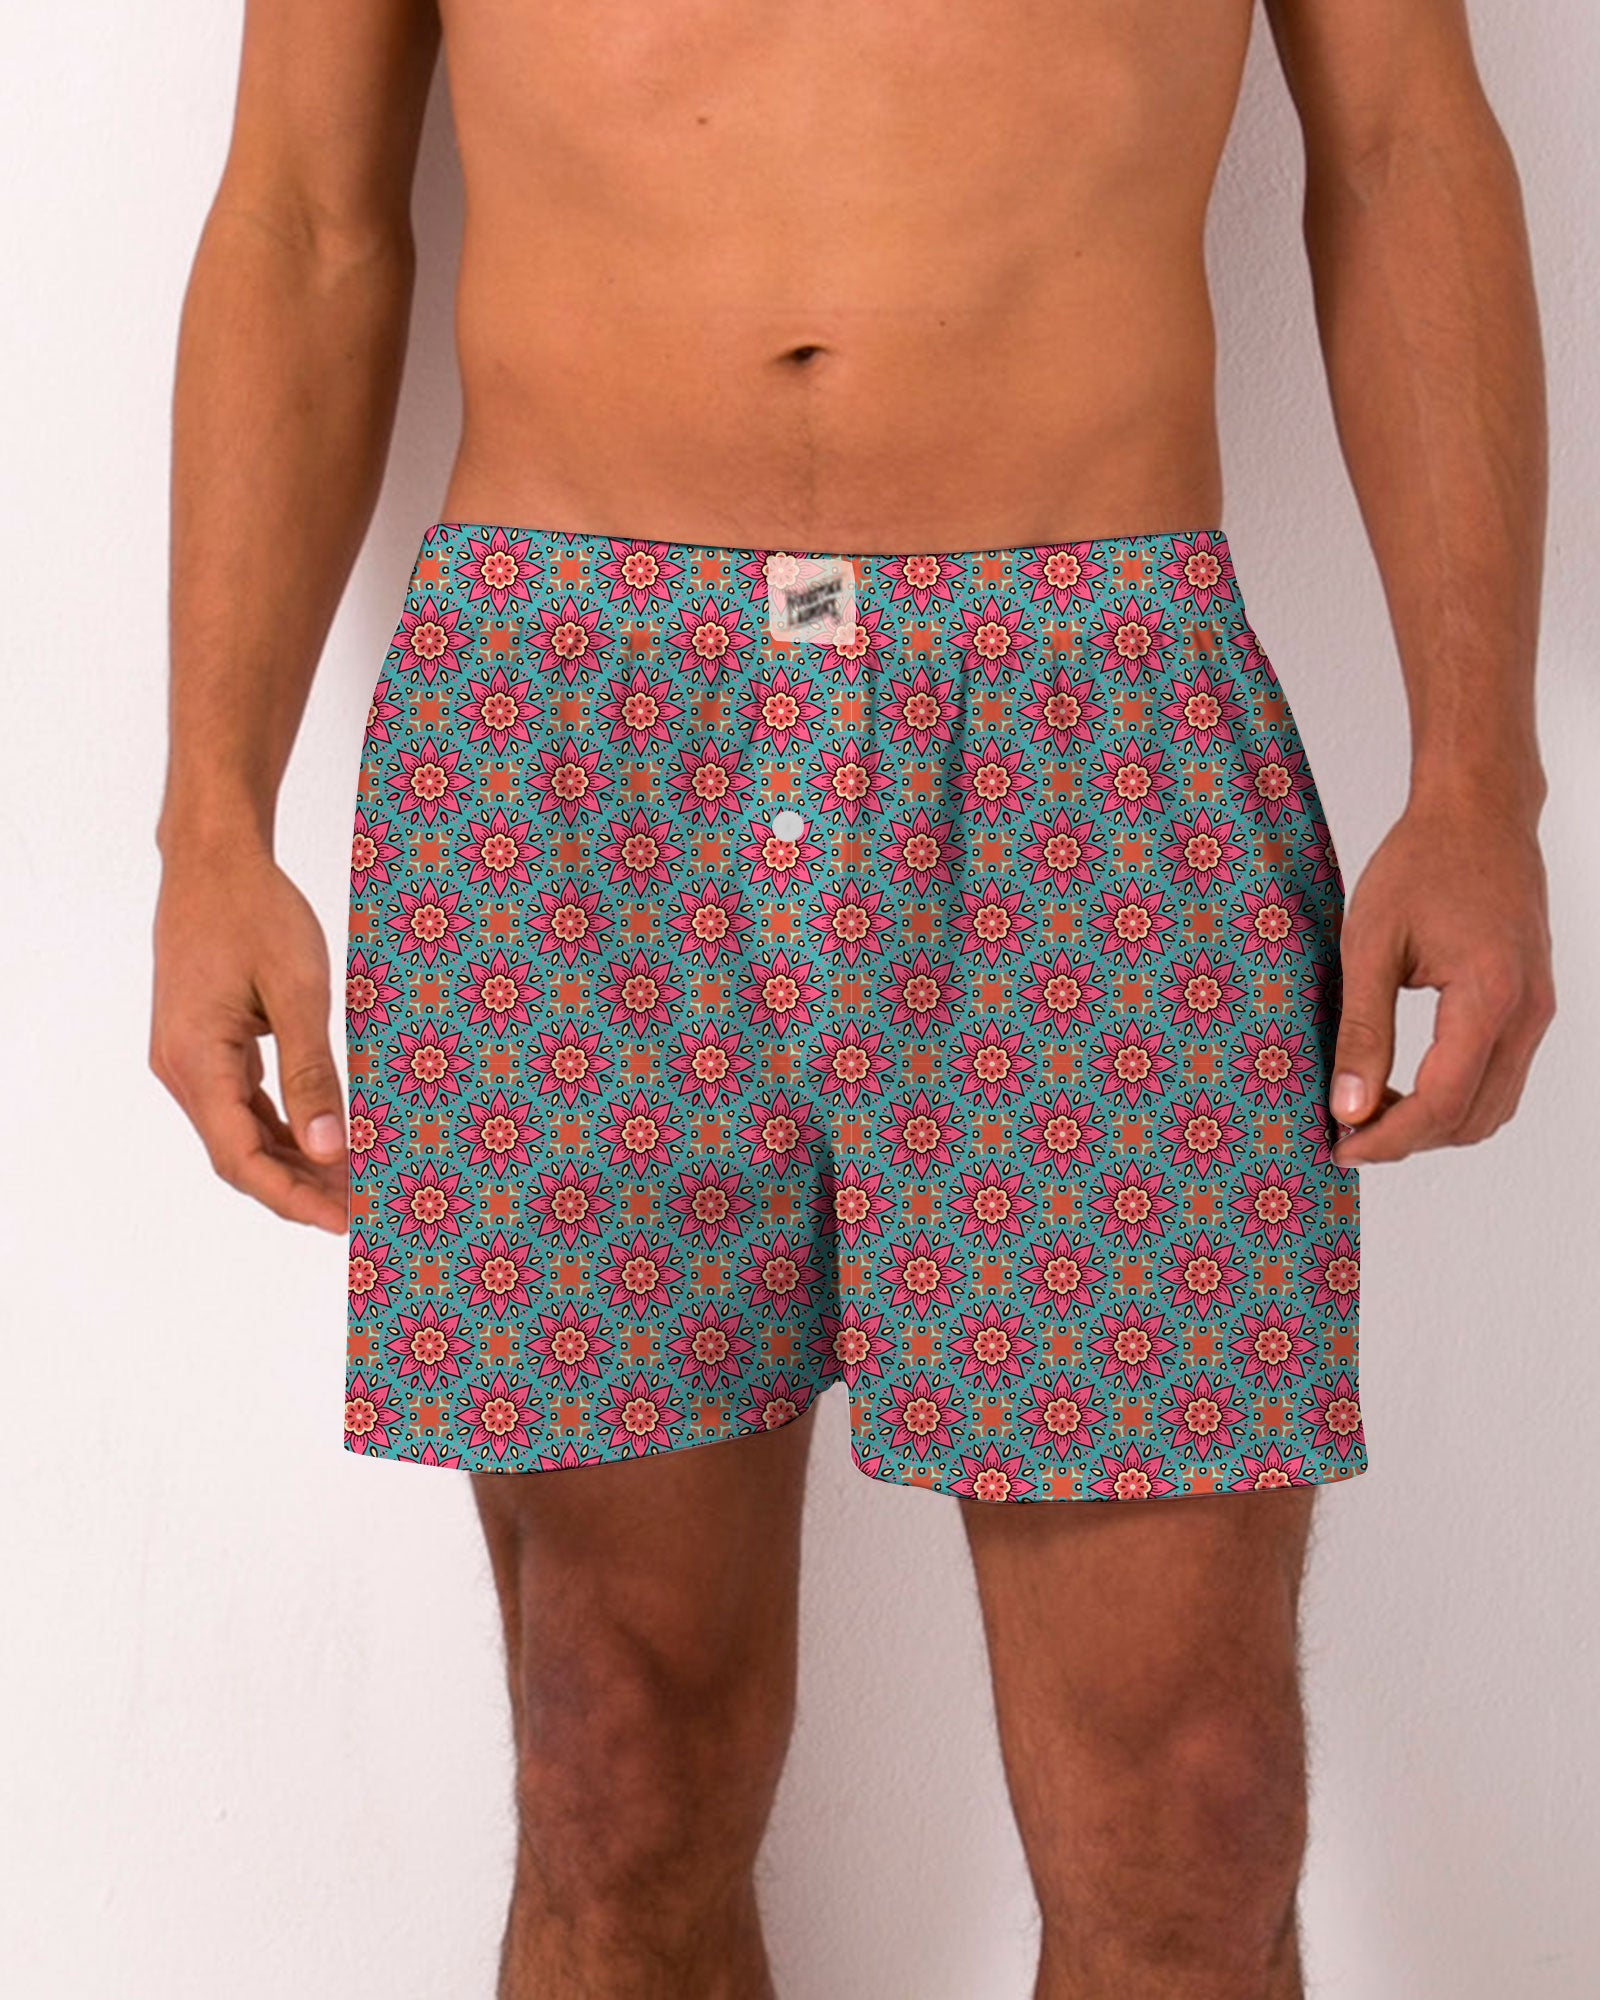 Boxer Shorts Central Park Flower - Woodstock Laundry